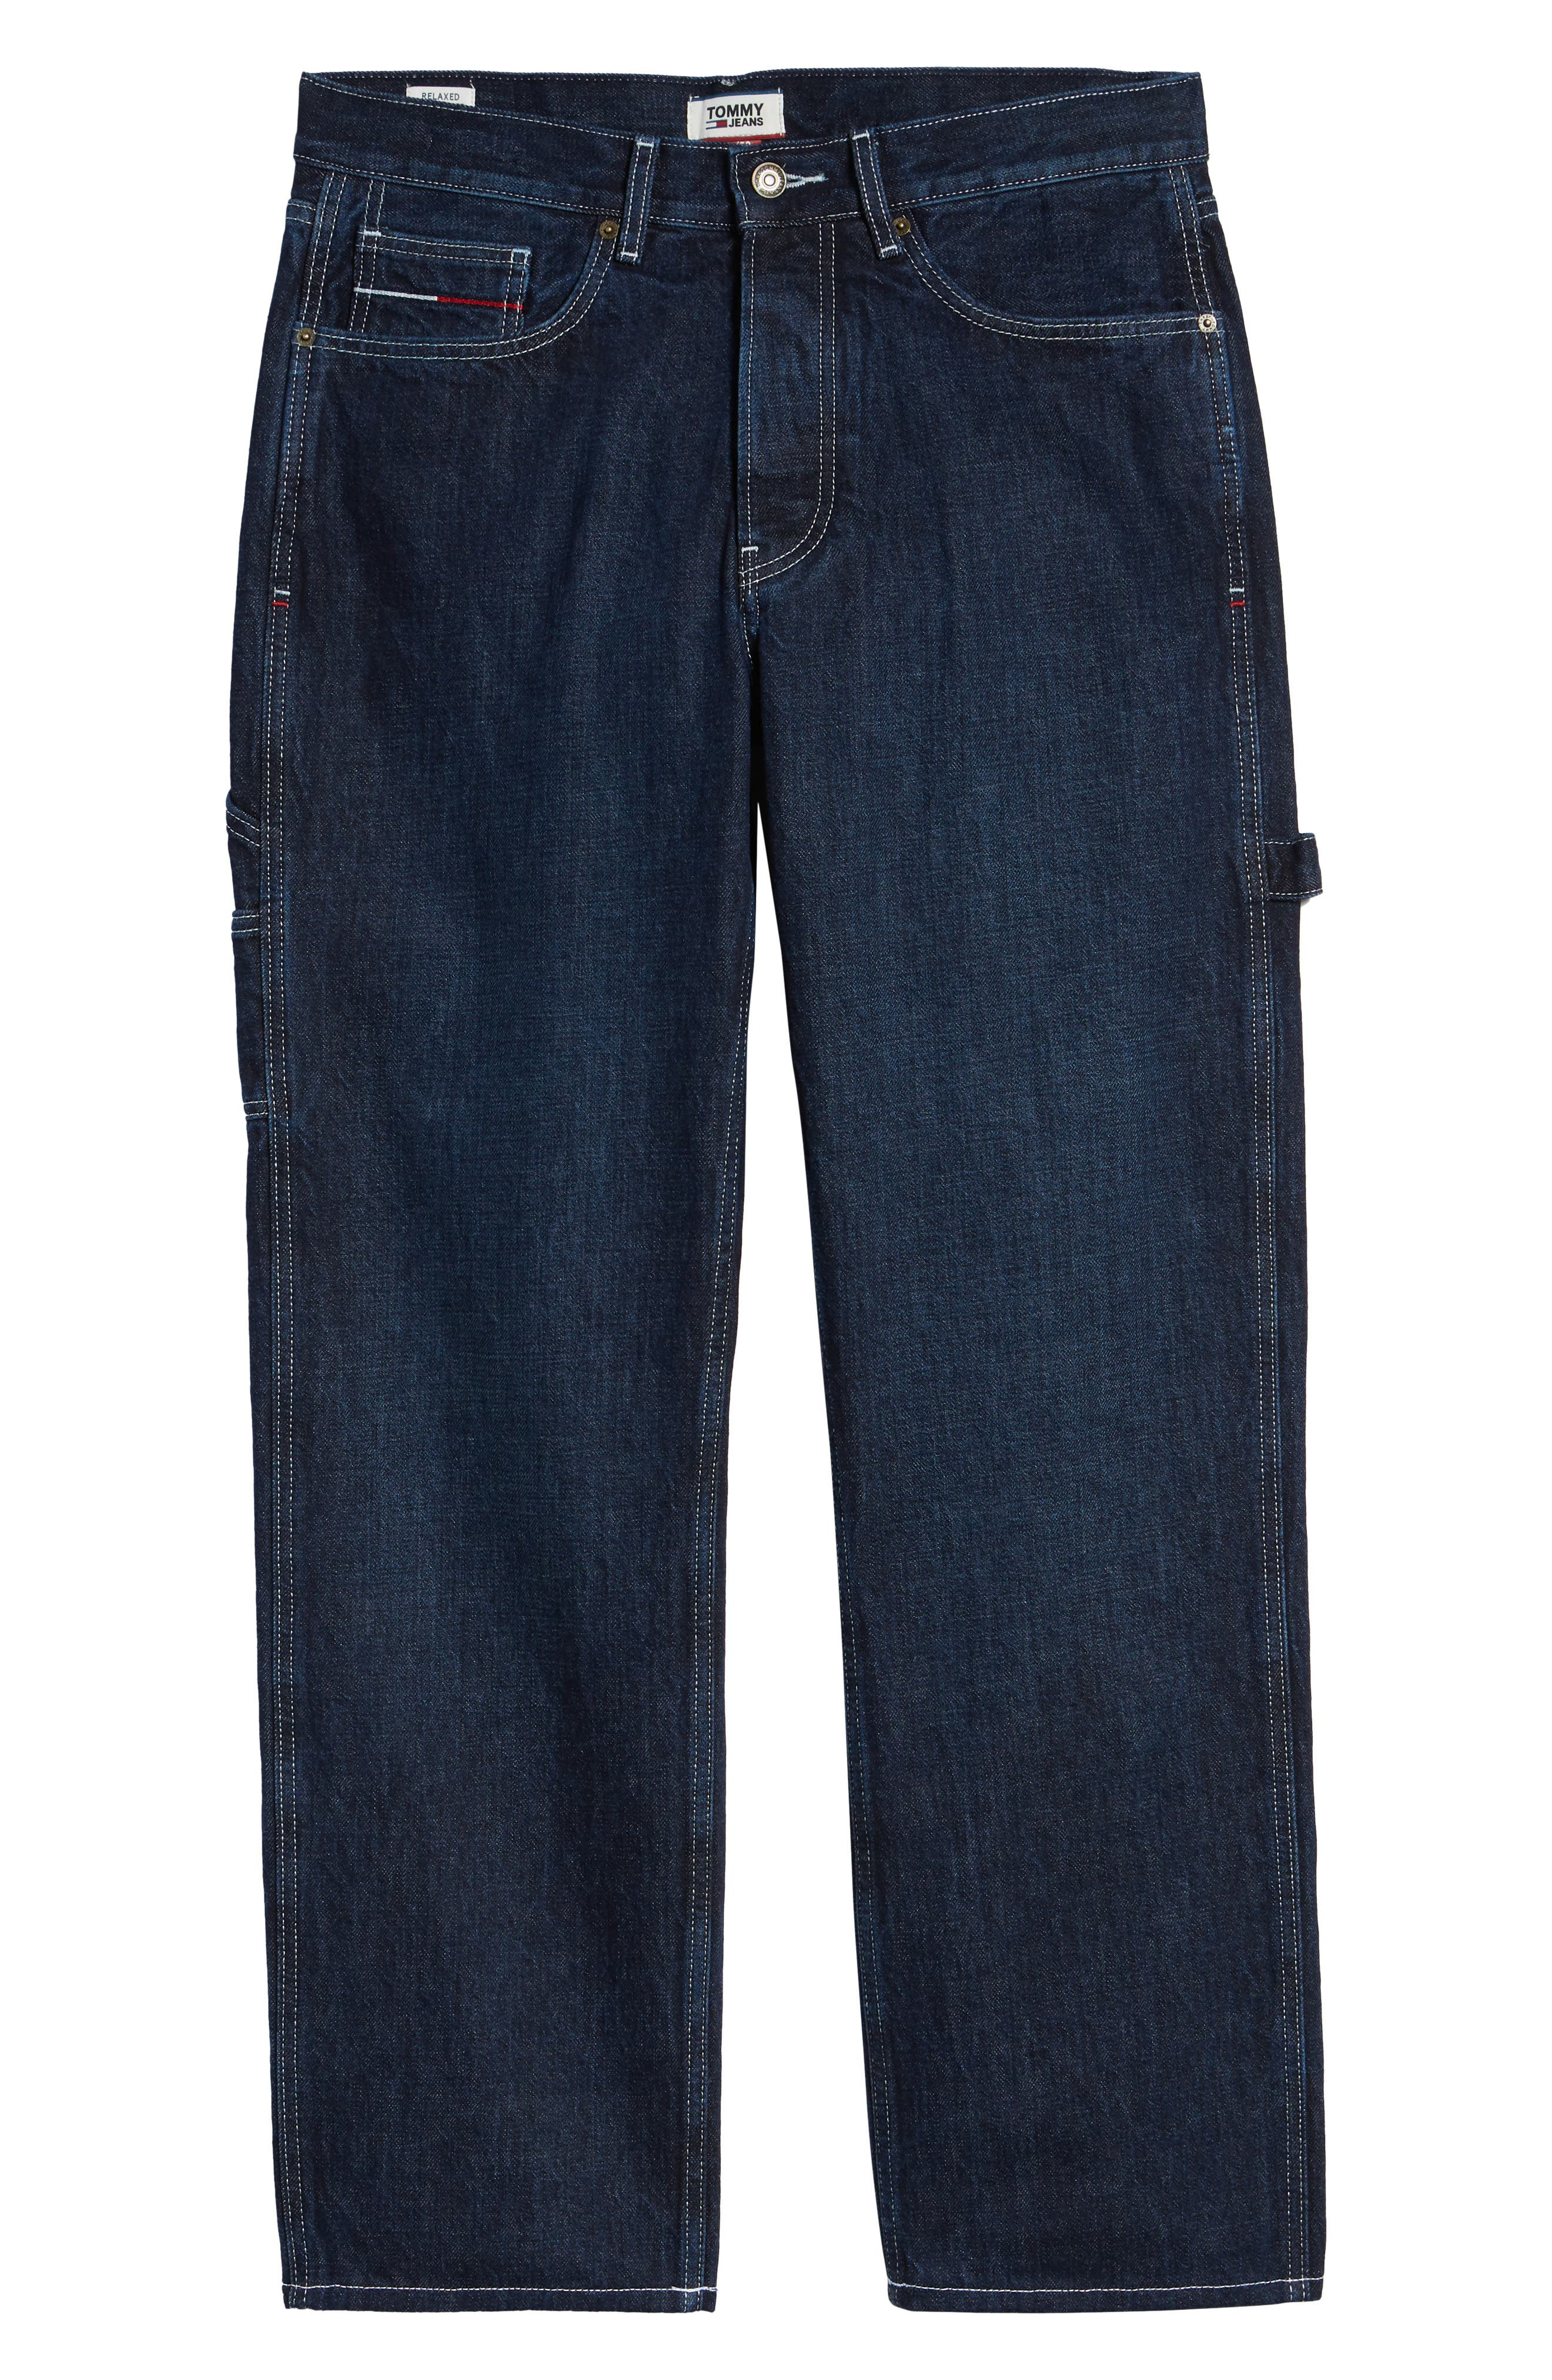 TJM 1986 Relaxed Carpenter Pants,                             Alternate thumbnail 6, color,                             CONTRAST DARK RIG